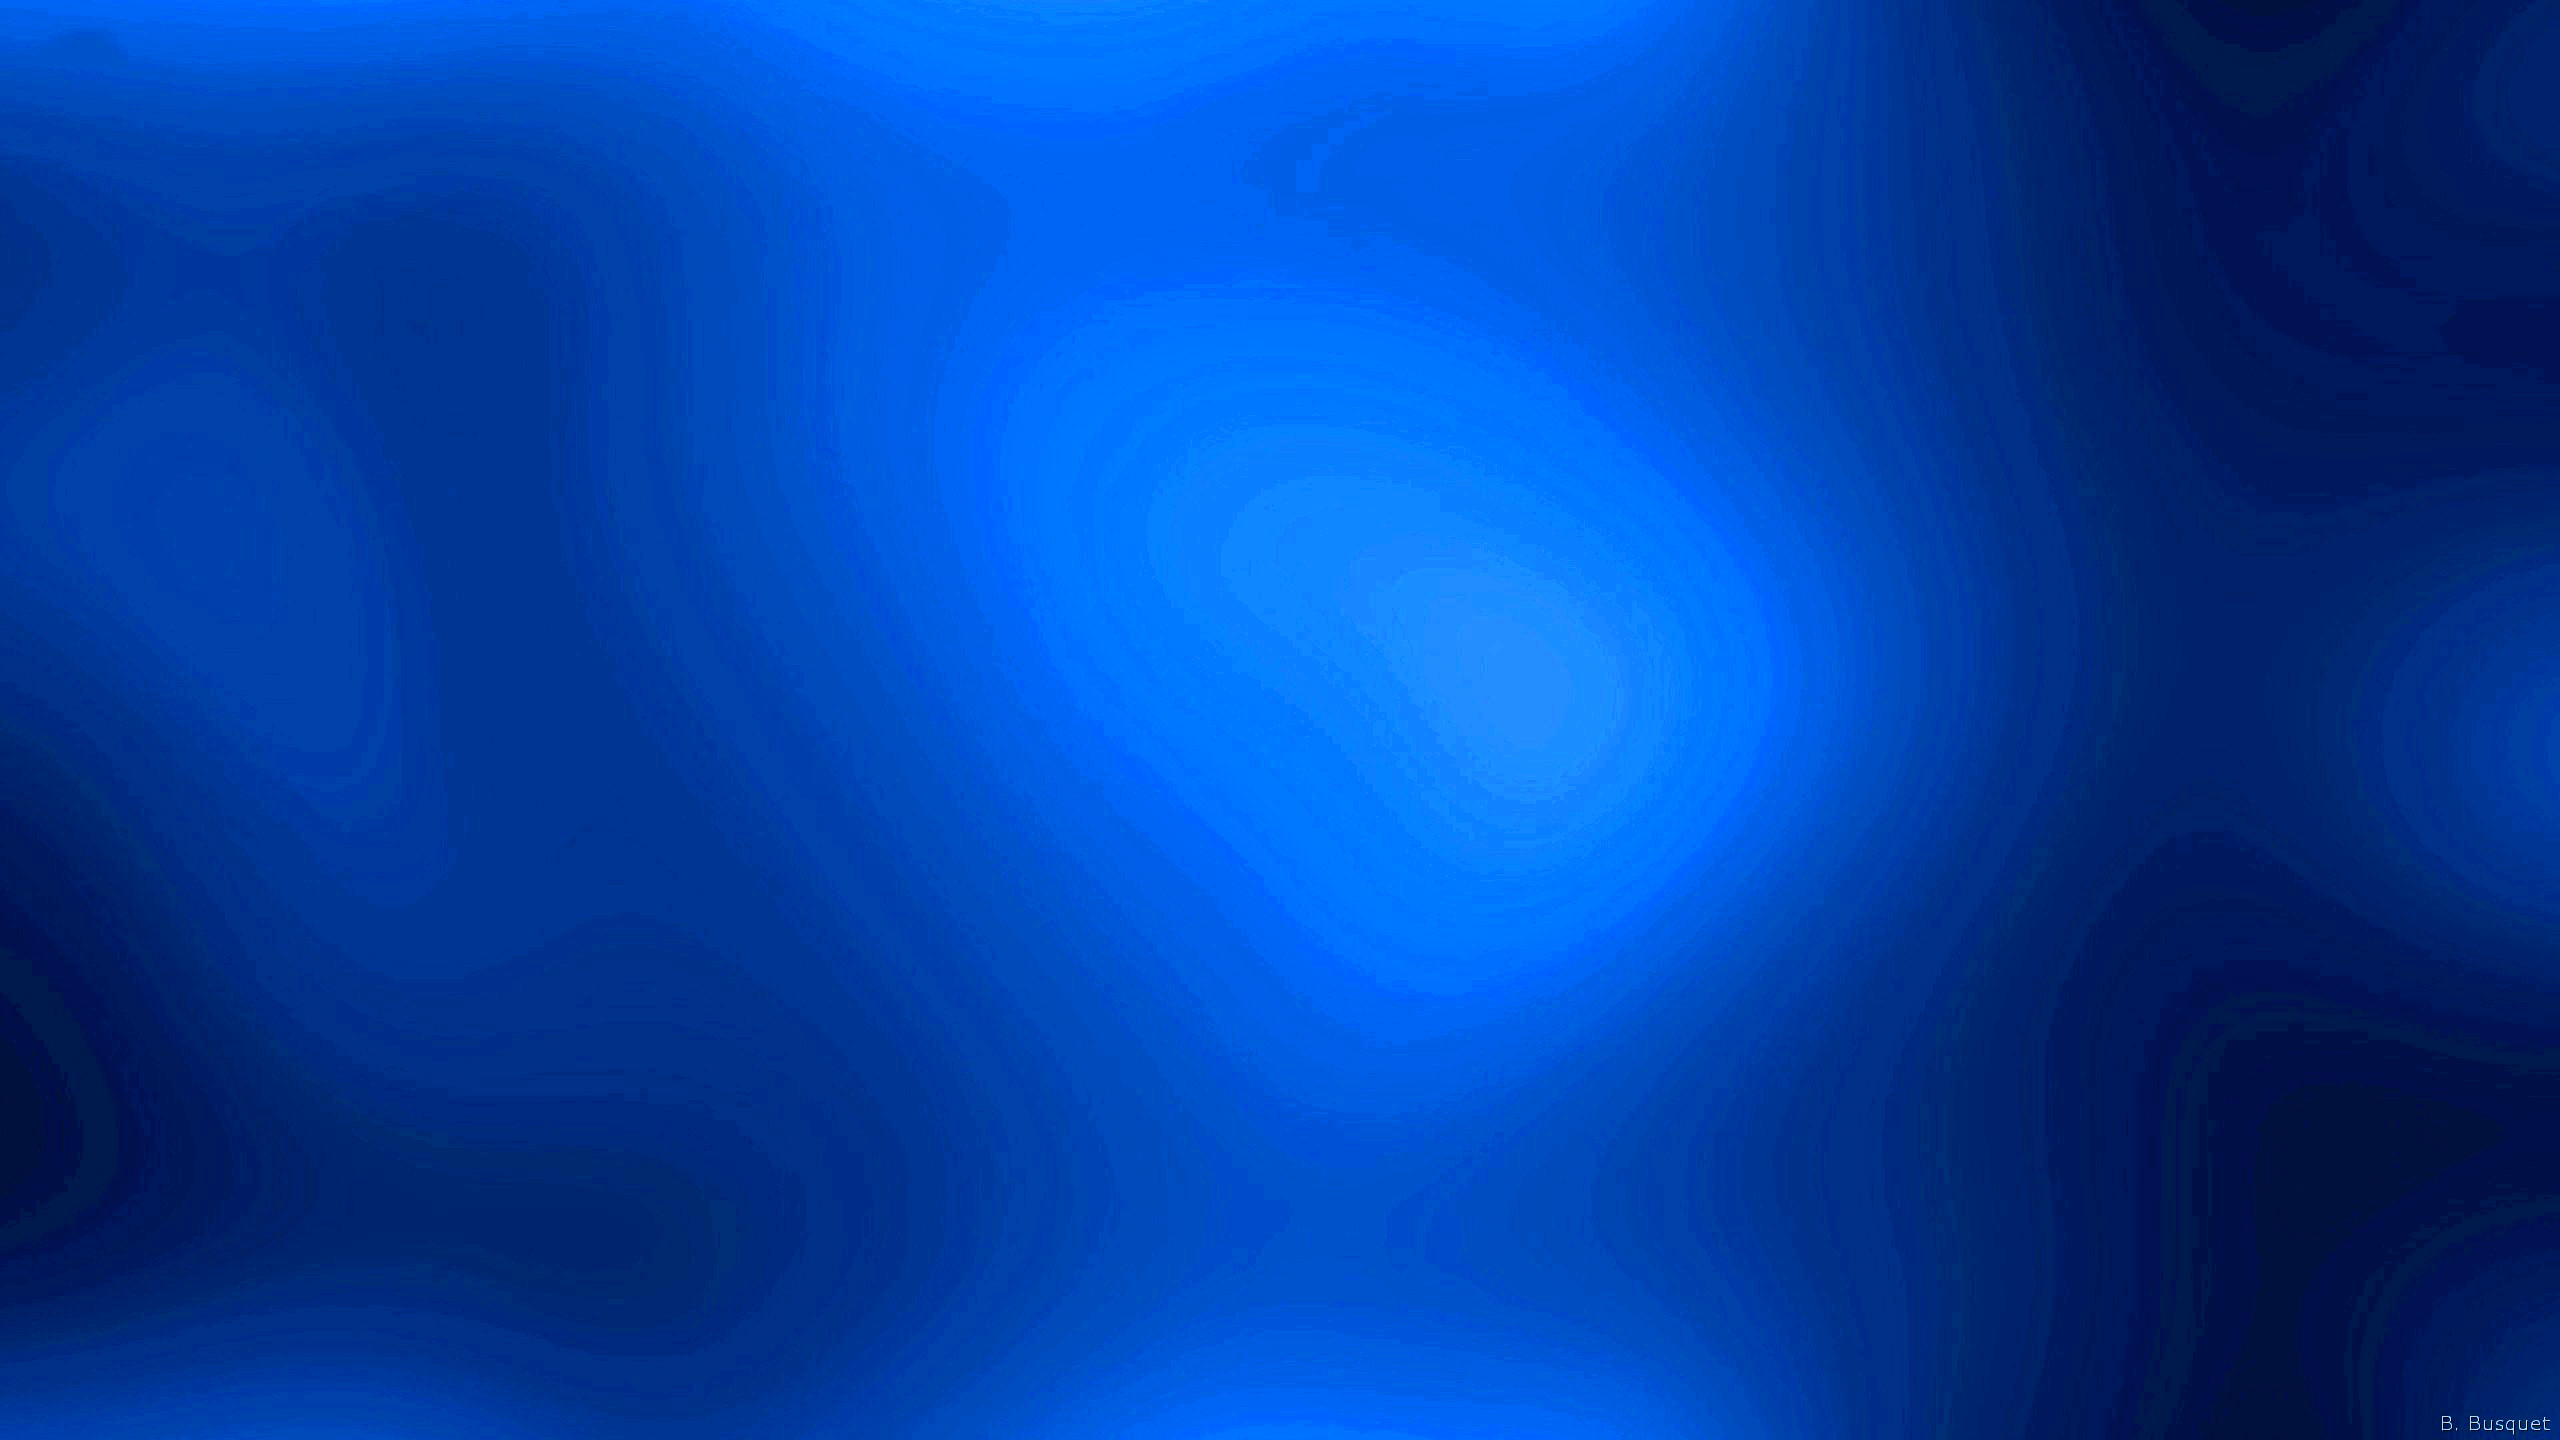 wallpaper background gradient blue - photo #32